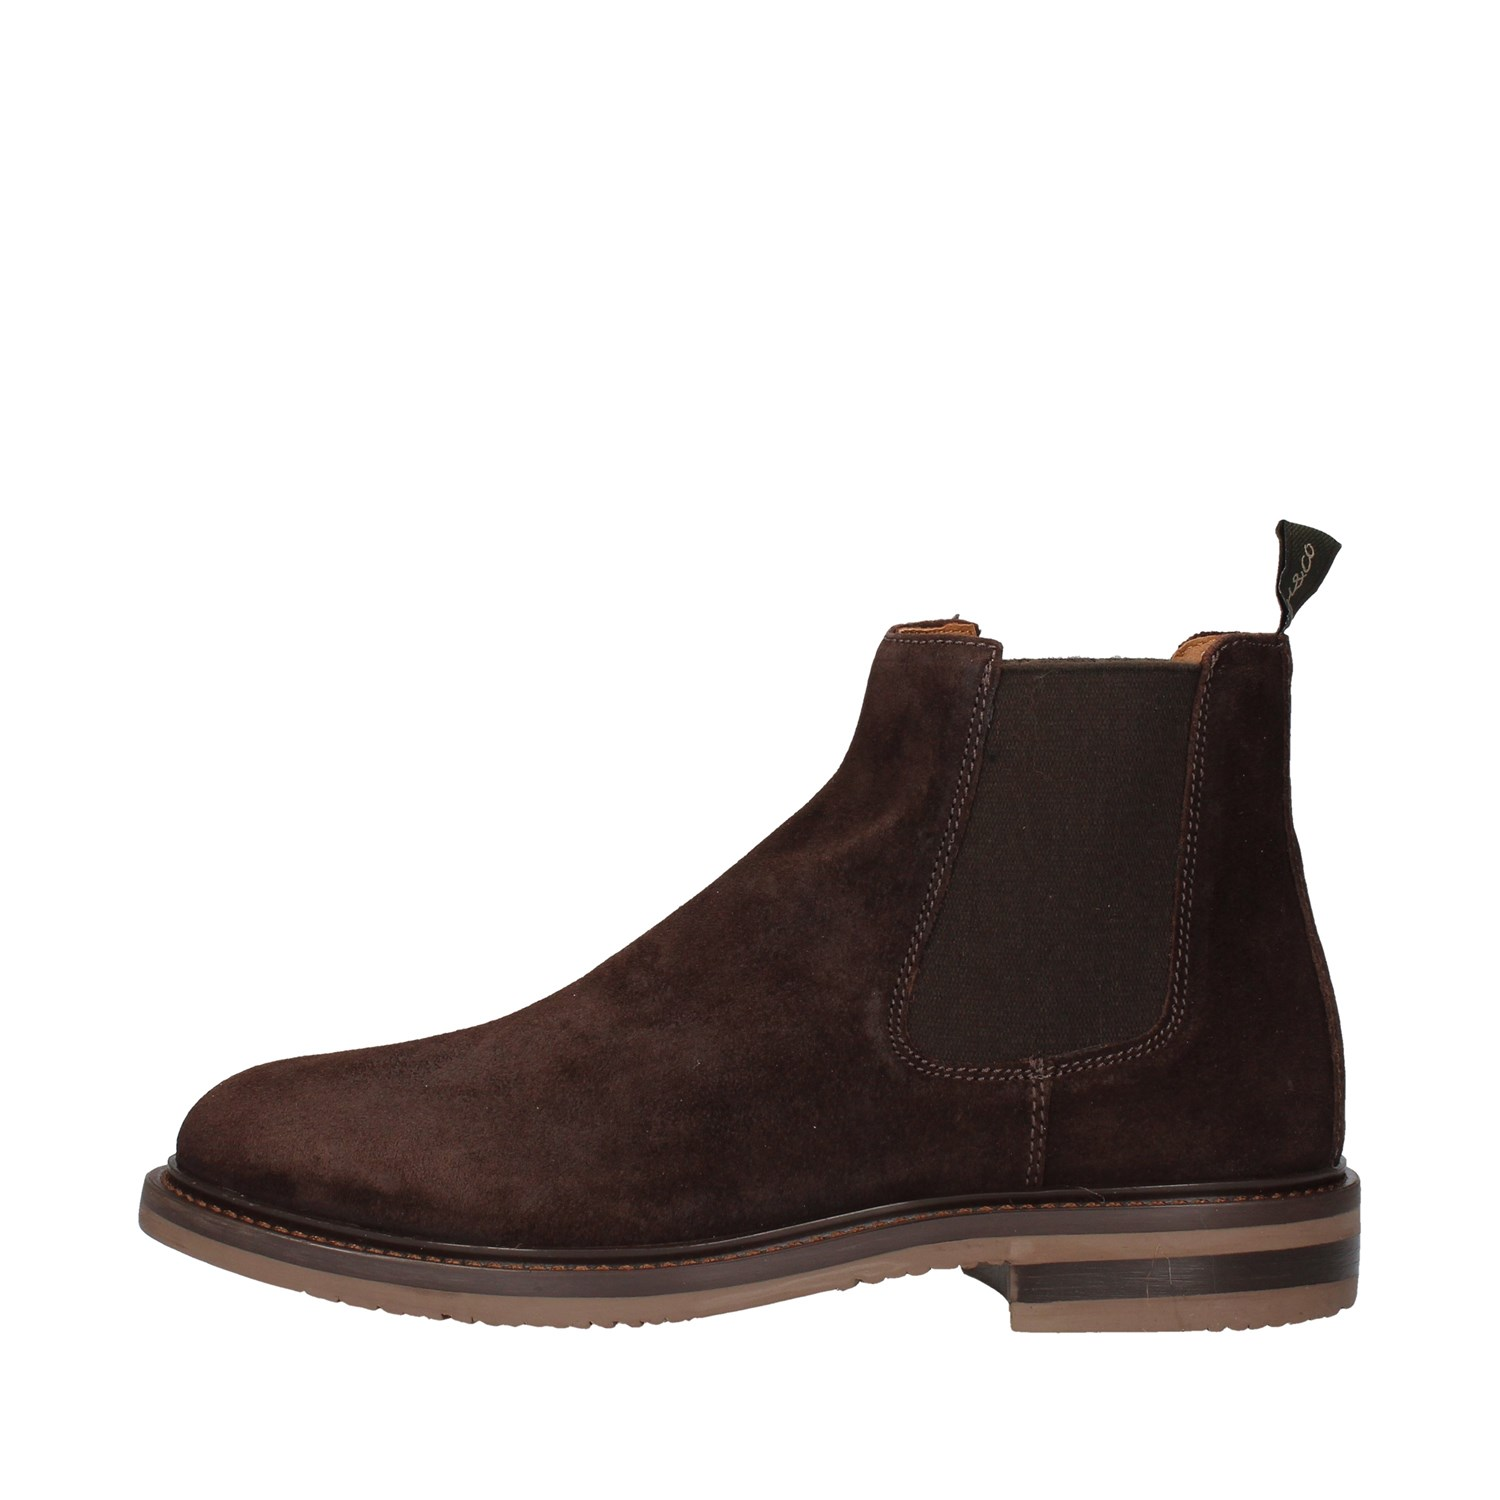 Igi&co Shoes Man boots BROWN 4107822